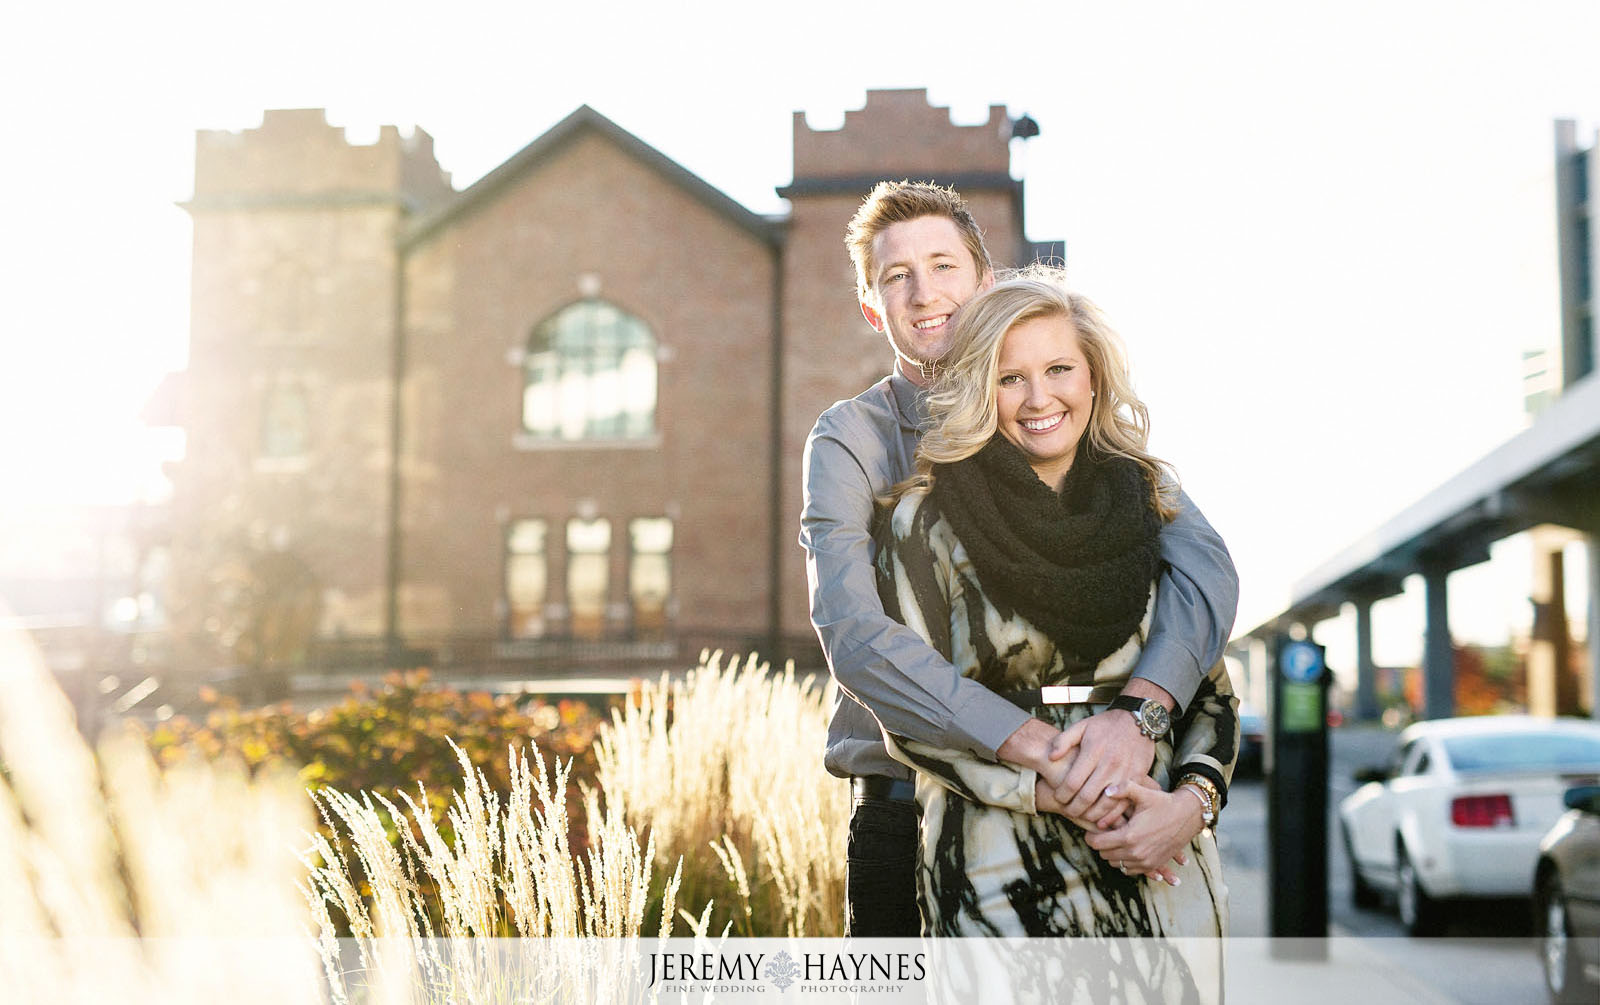 02-romantic-downtown-indiana-central-canal-indianapolis-engagement-photo-ideas.jpg